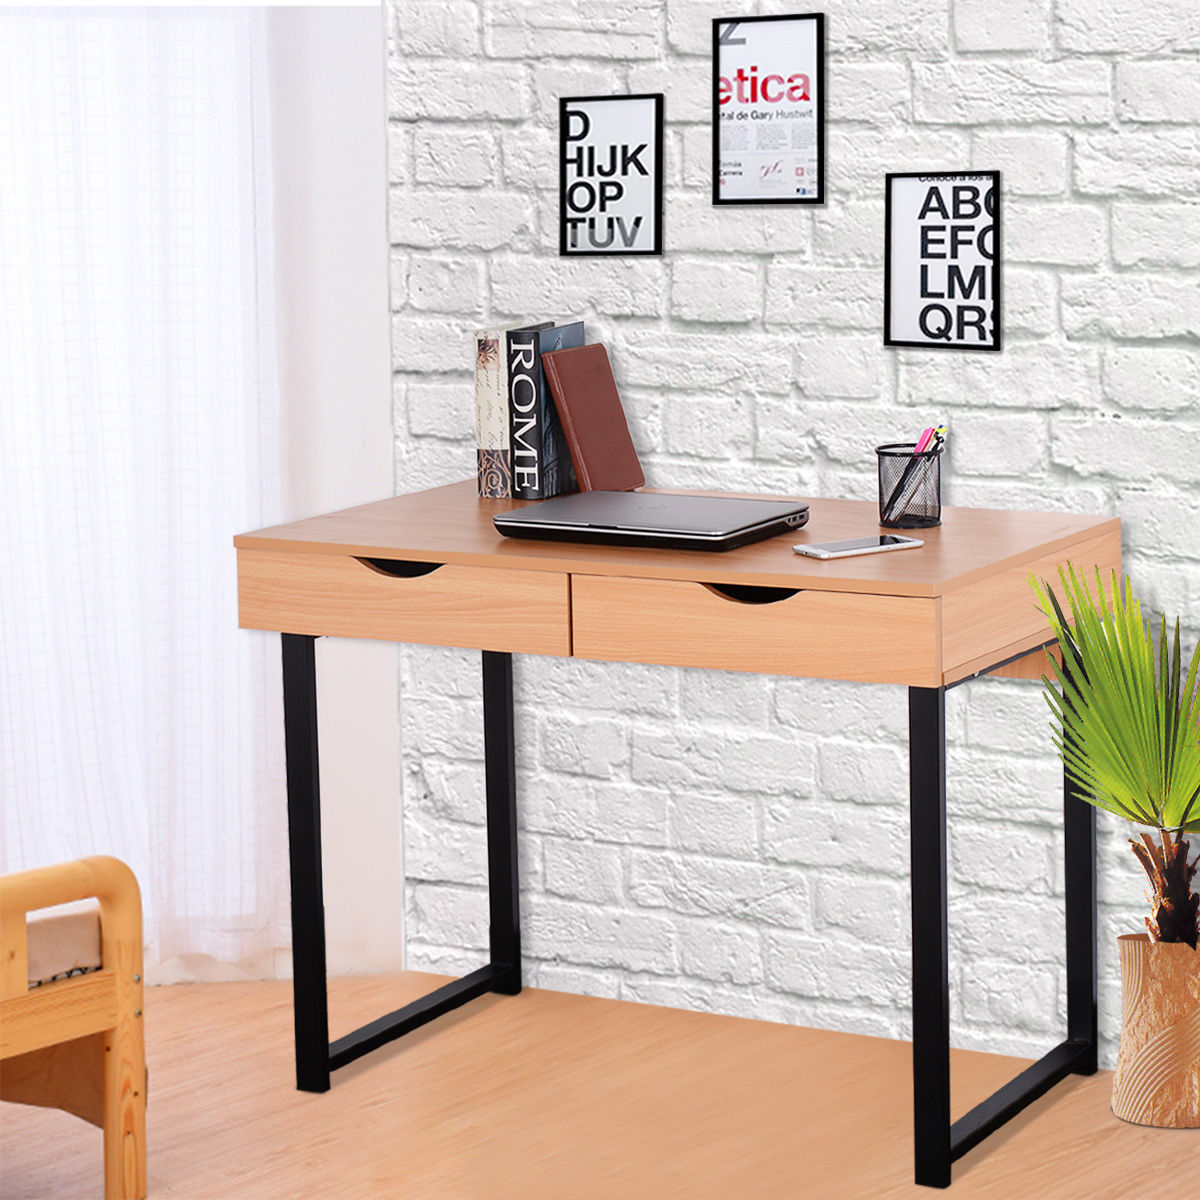 Giantex Modern Computer Desk Home Office Furniture Workstation Table Steel Frame Wood Laptop Desk With 2 Drawers HW54145 free shipping christmas deer table european diy arts crafts home decorative elk wood craft gift desk self build puzzle furniture